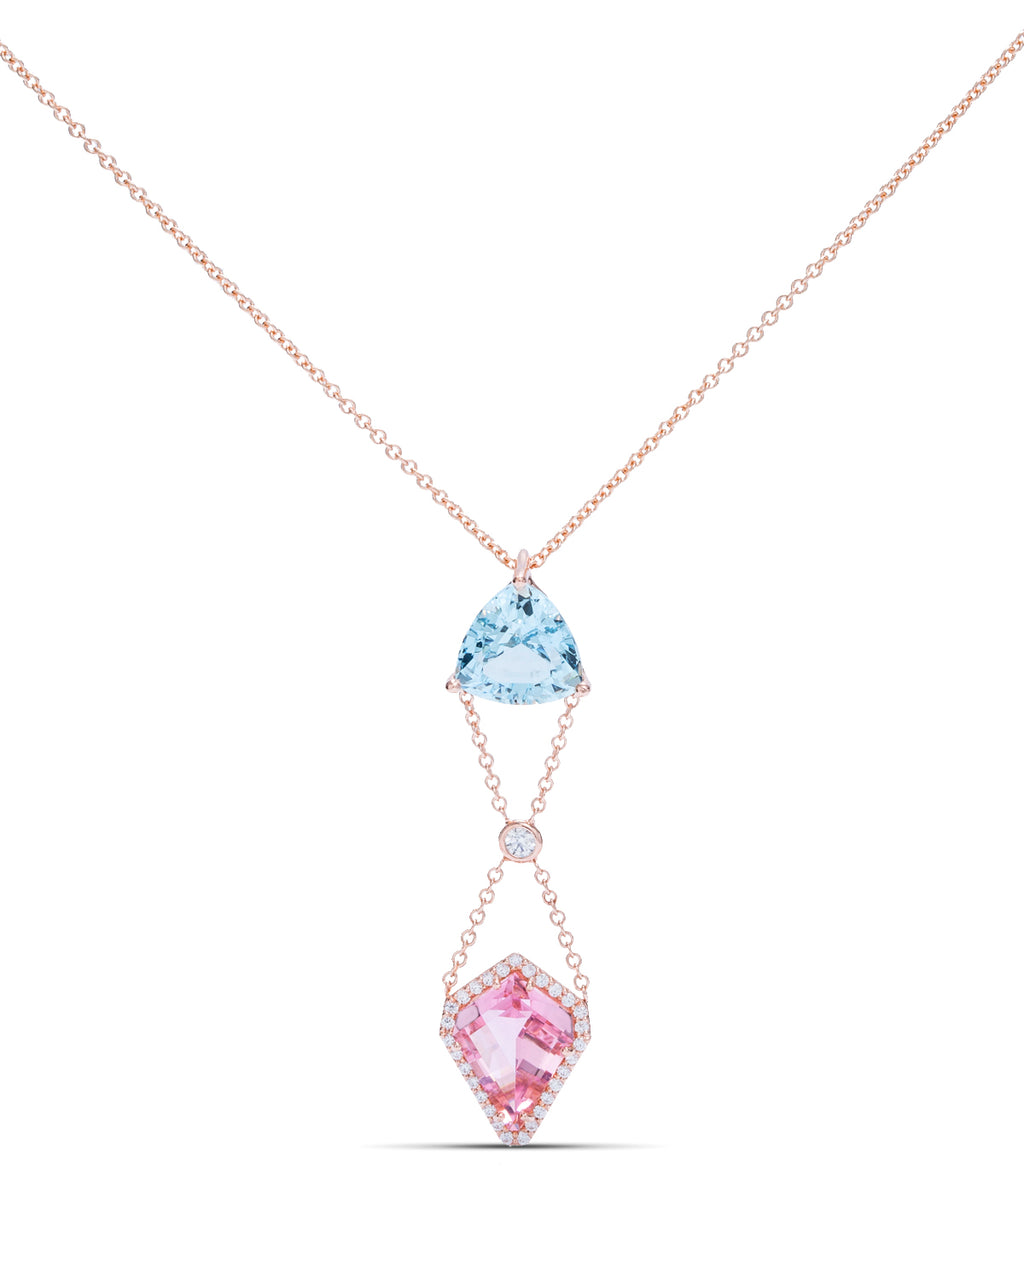 Aquamarine and Pink Tourmaline Pendant